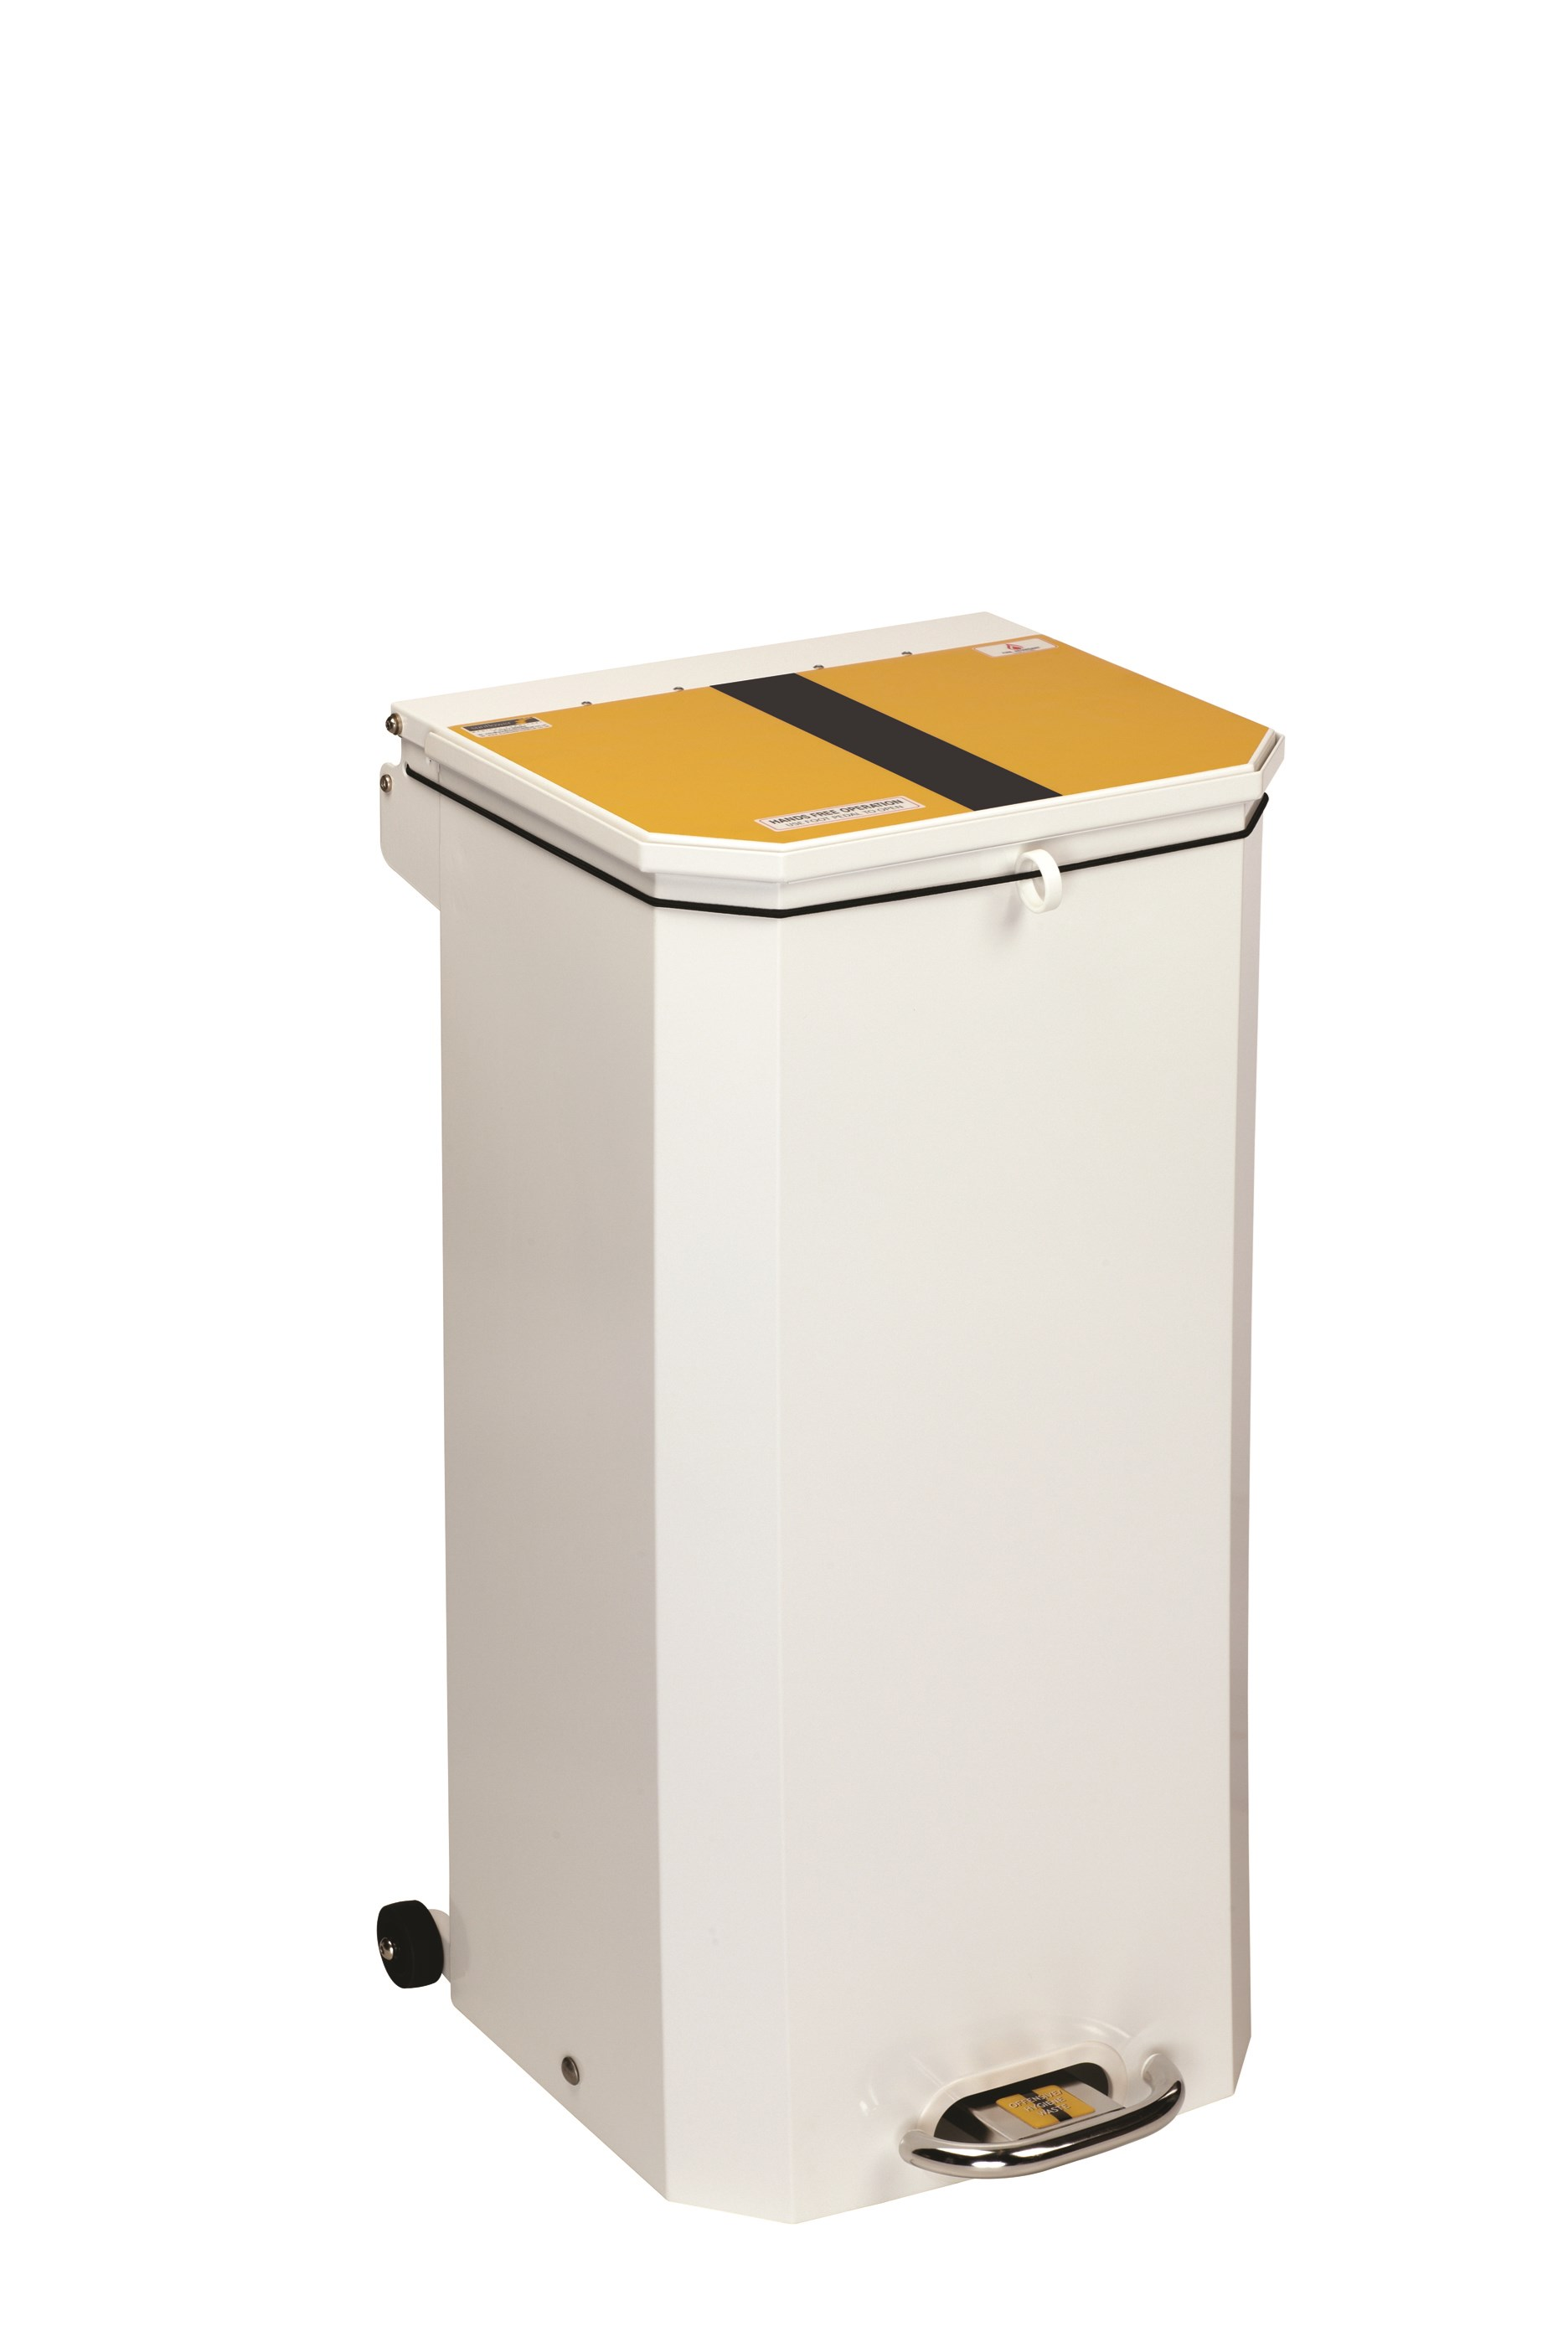 BIN PEDAL 70 LTR WITH YELLOW AND BLACK LID FOR OFFENSIVE/HYGIENE WASTE